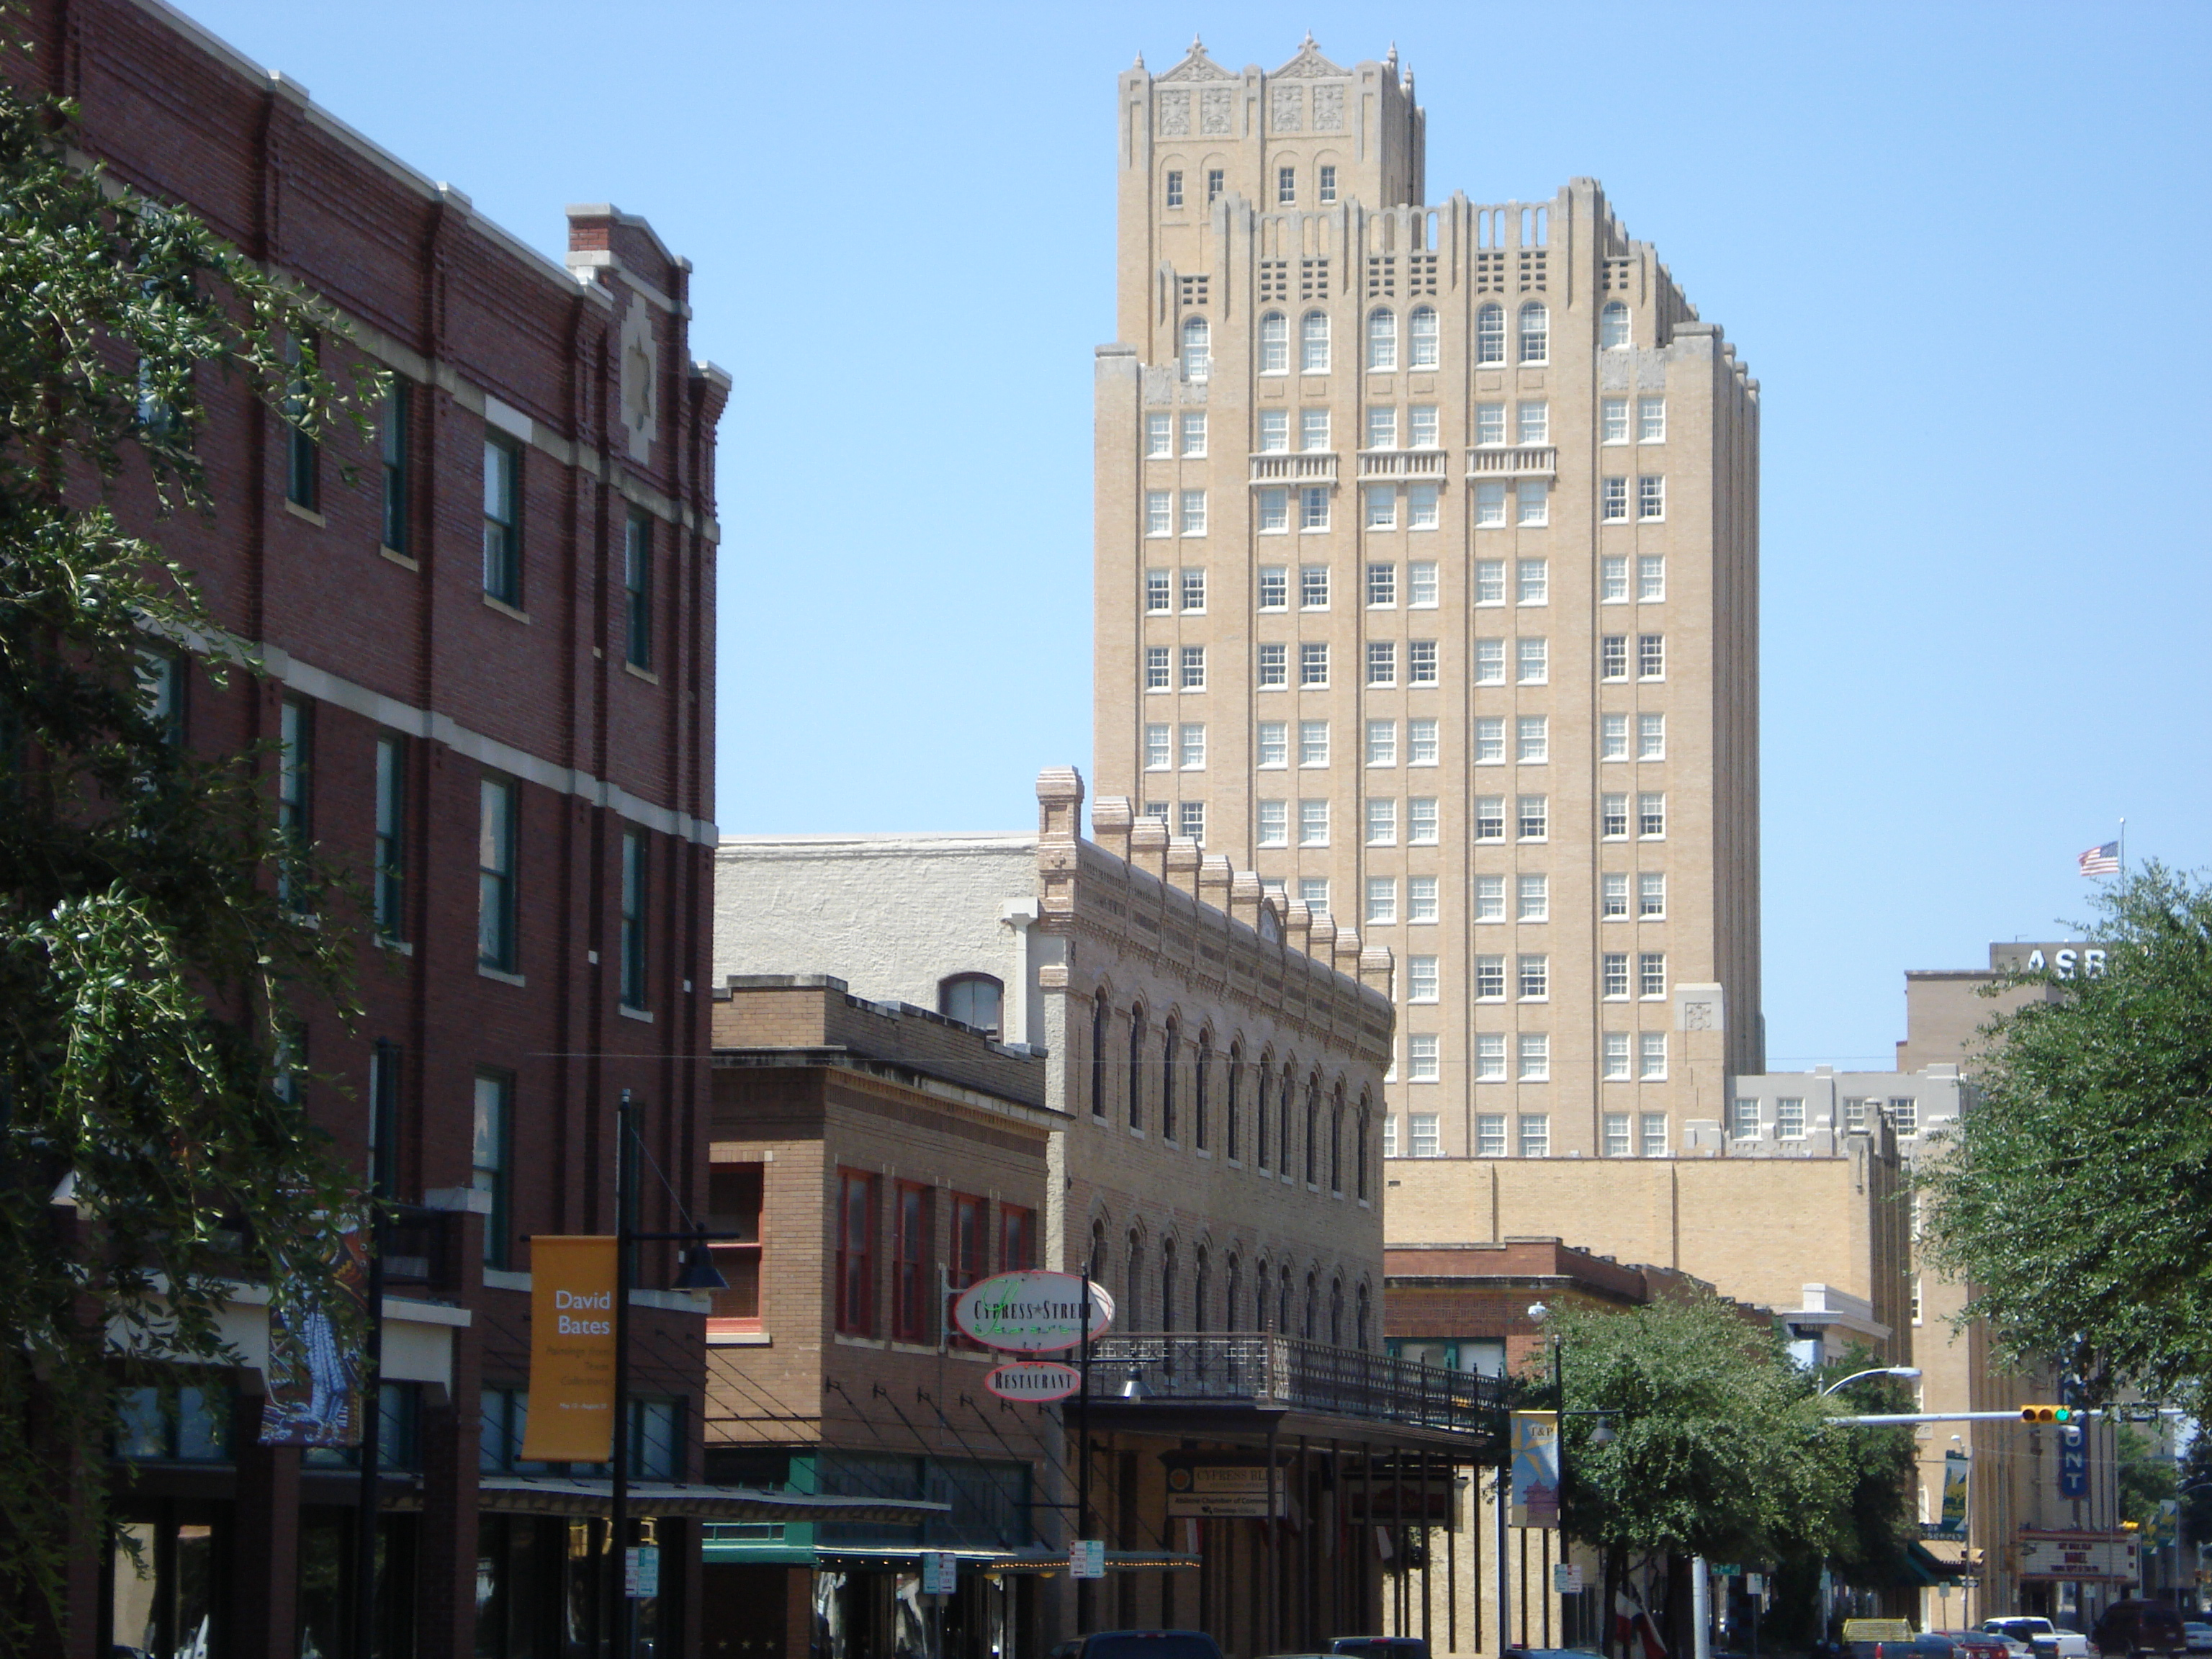 Abilene, TX - Commercial Real Estate - LMB Property Management